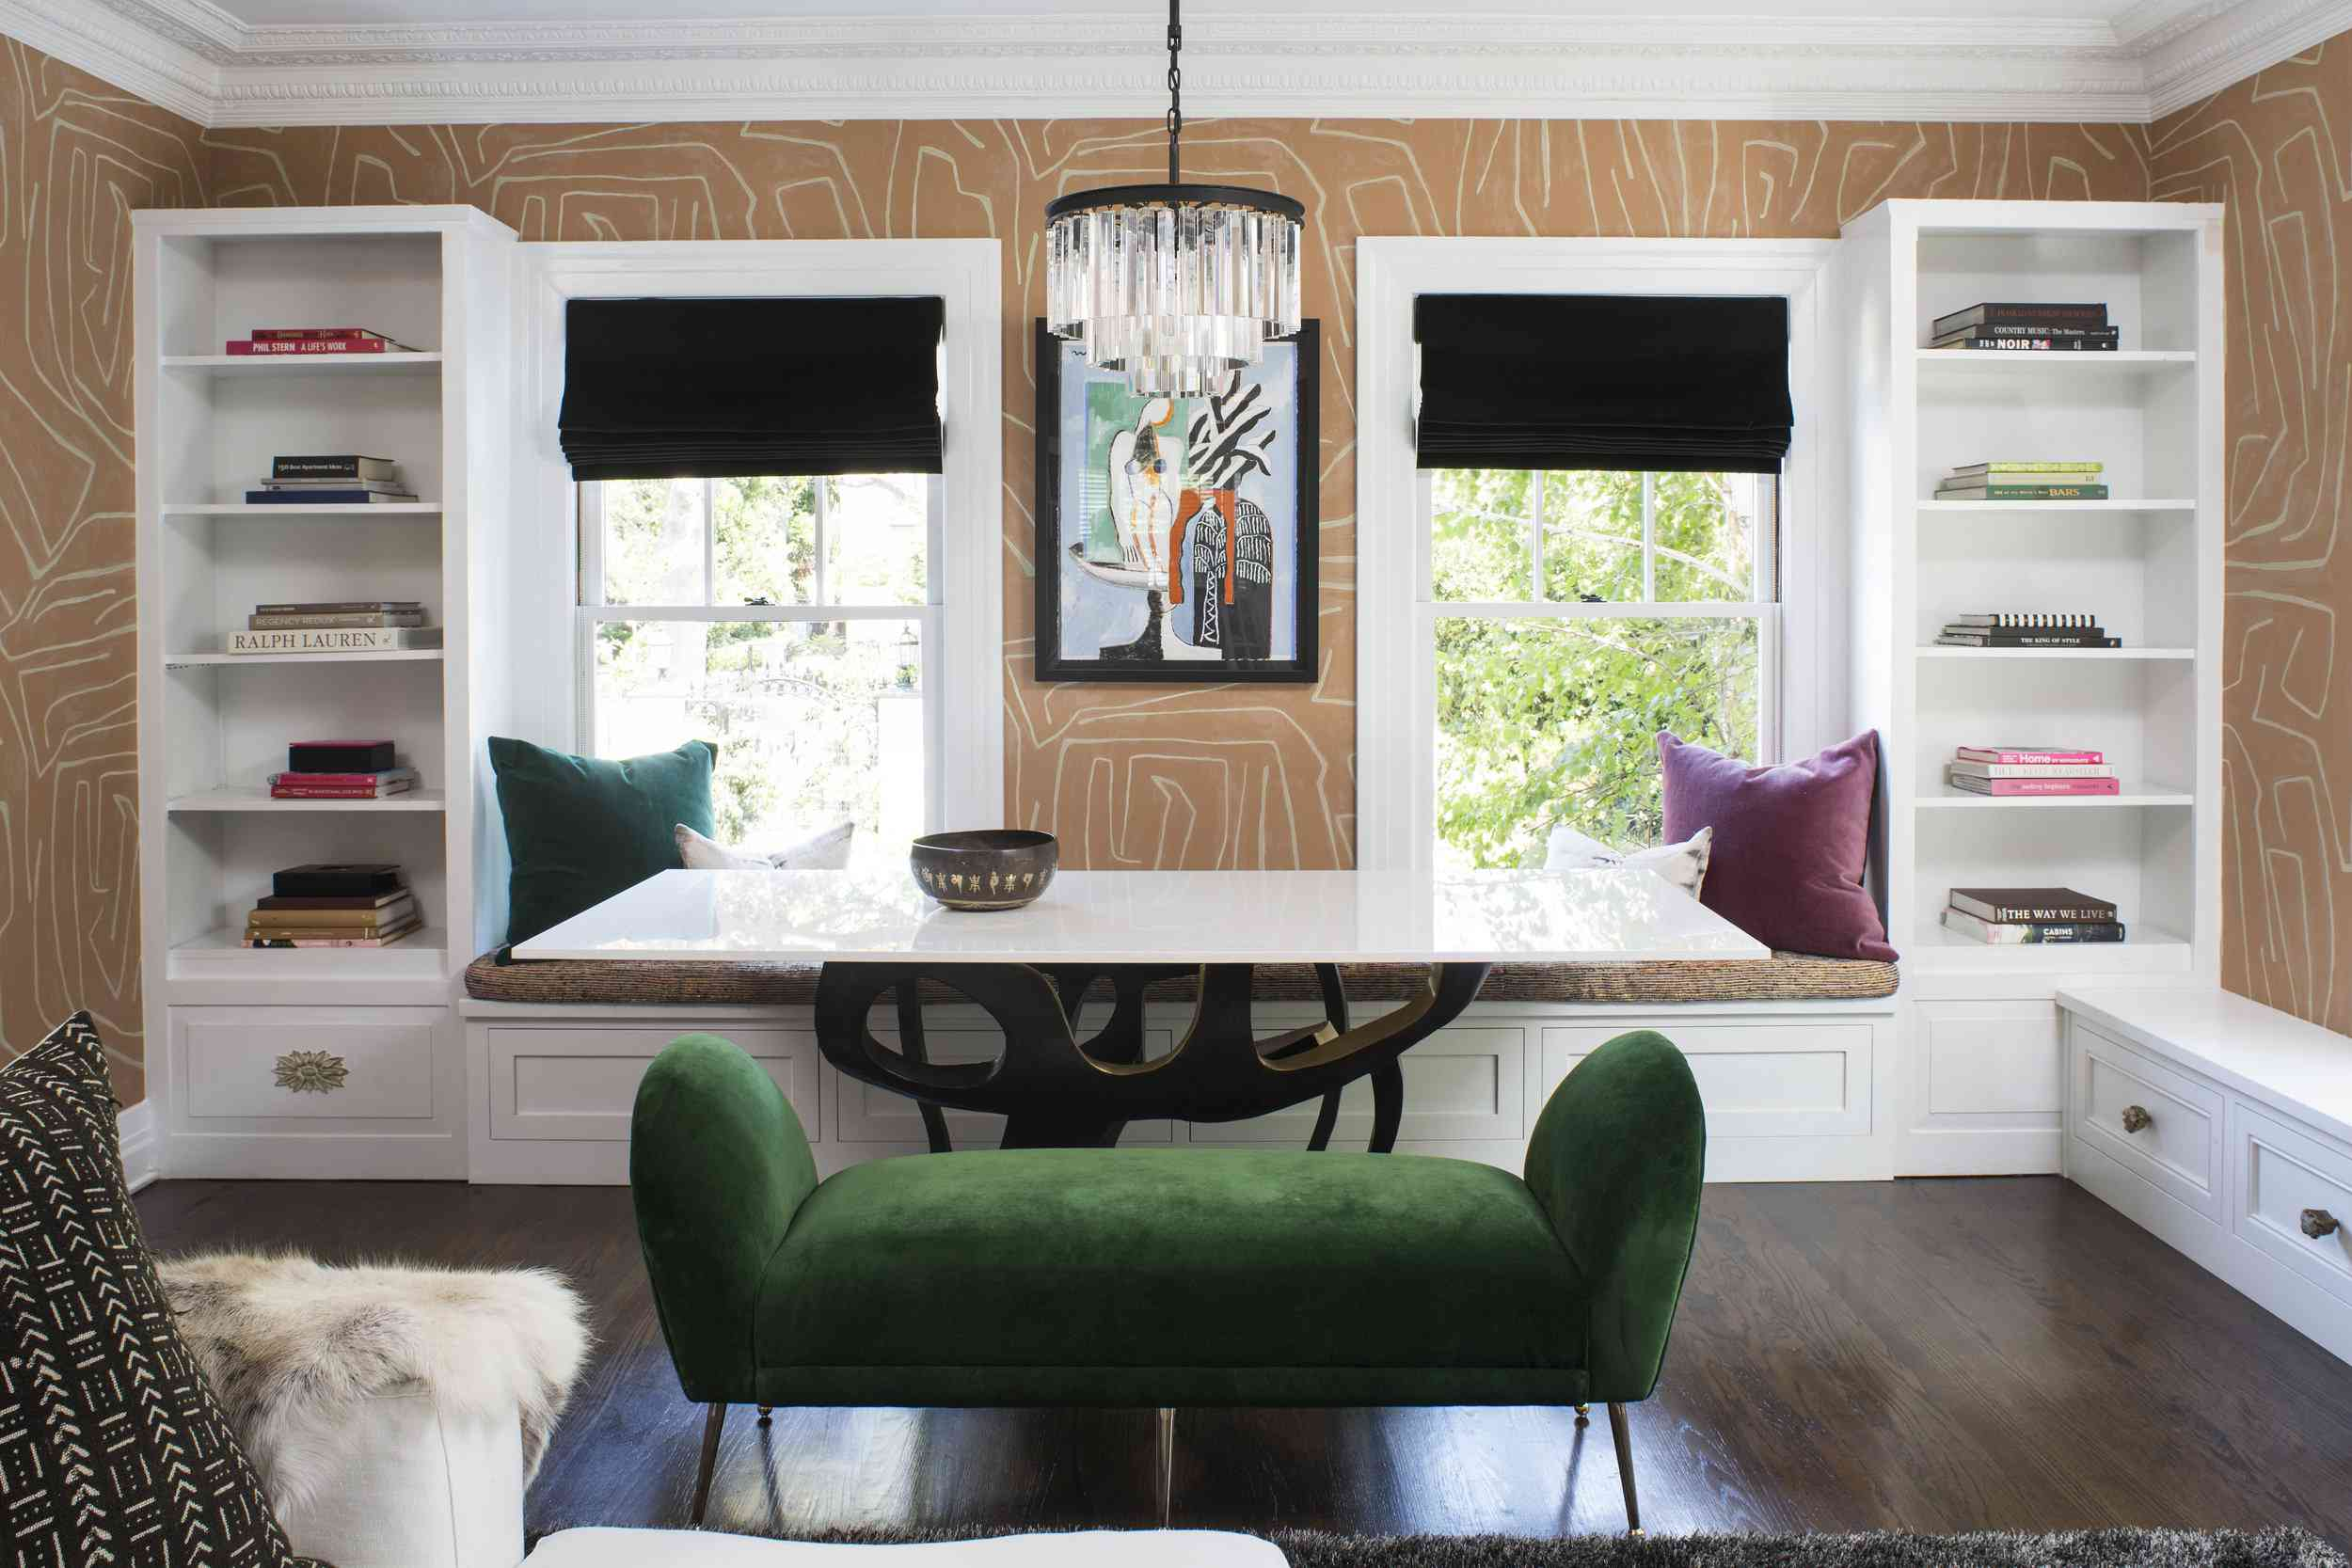 Tan room with green and black accents